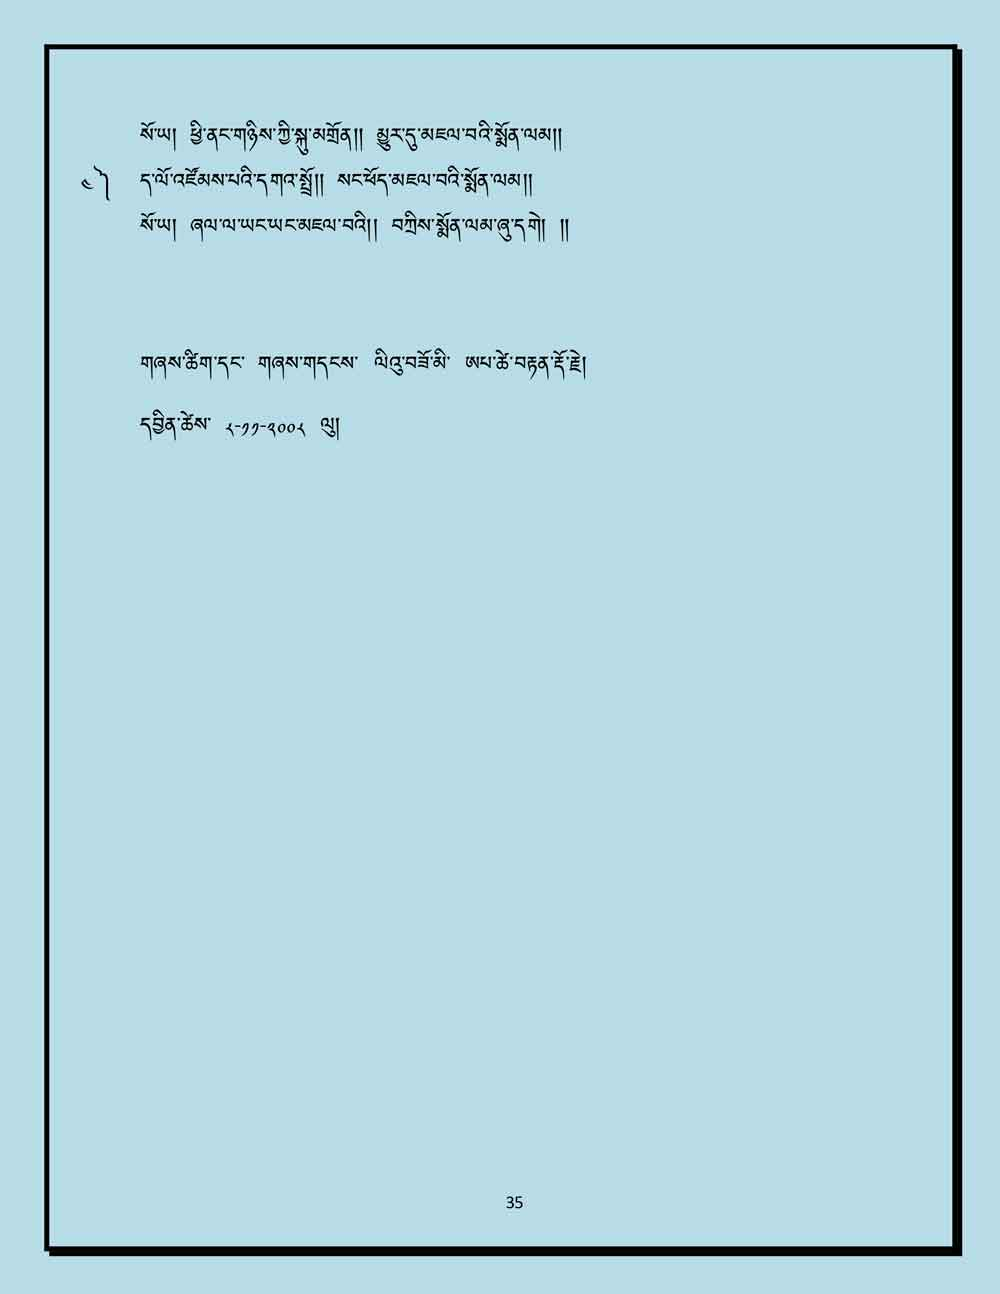 Ap-Tseten-Lyrics-35.jpg